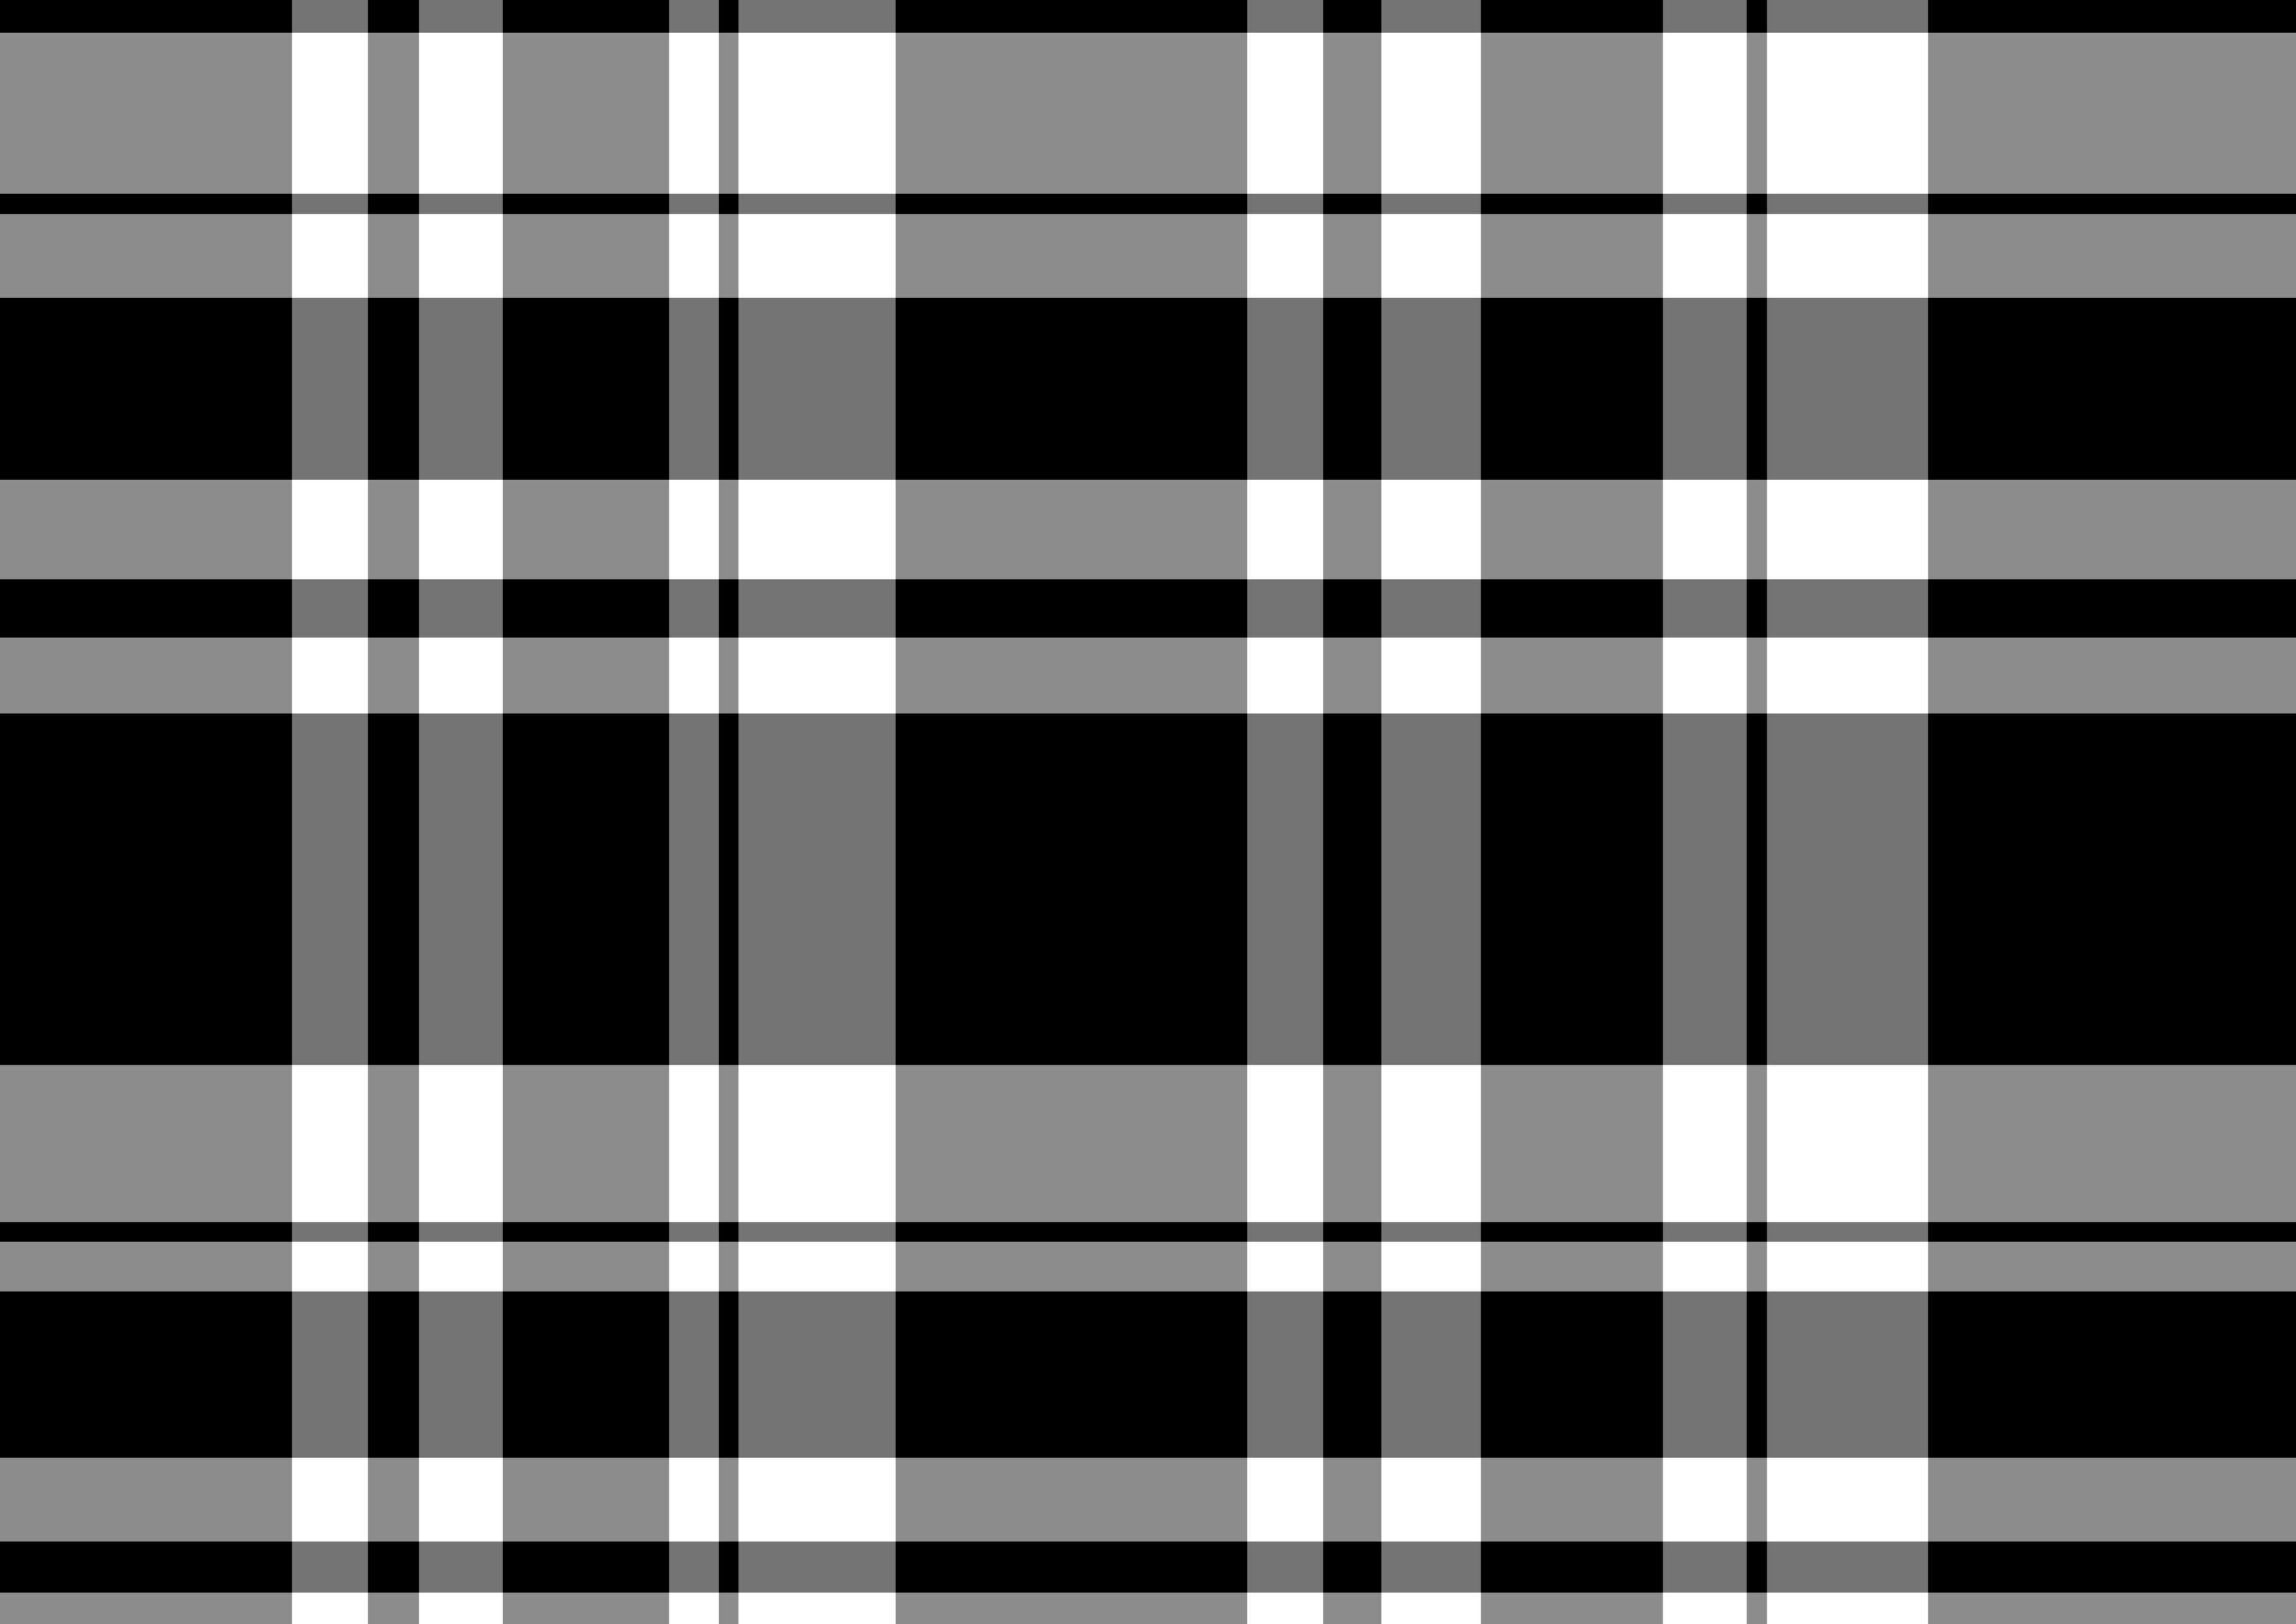 Checkerboard Backgrounds Free